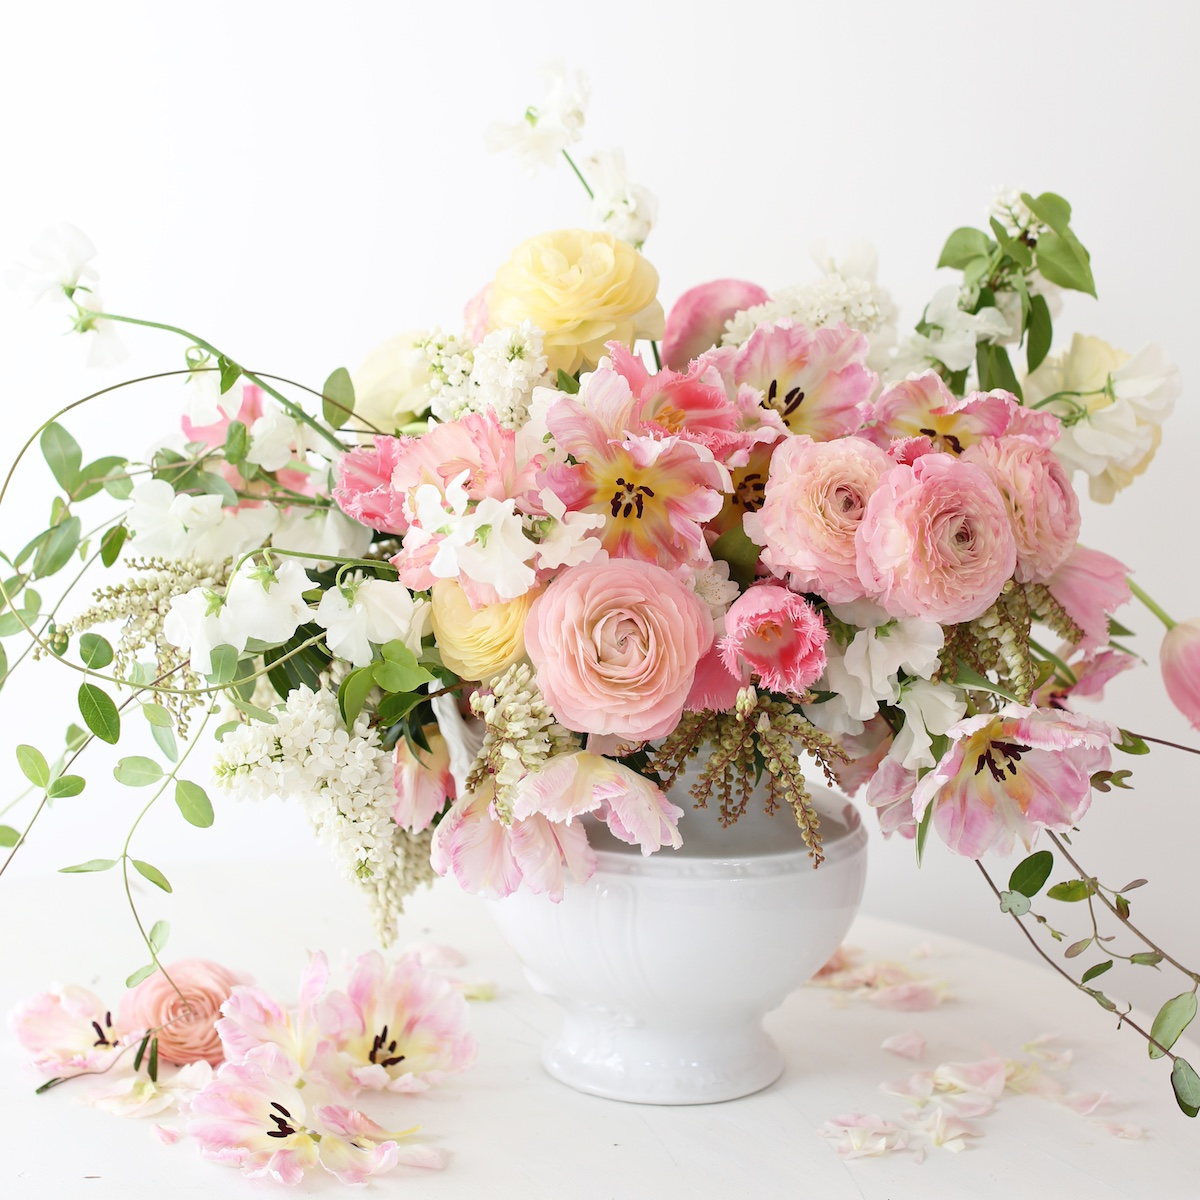 In the pink flower arrangements magazine